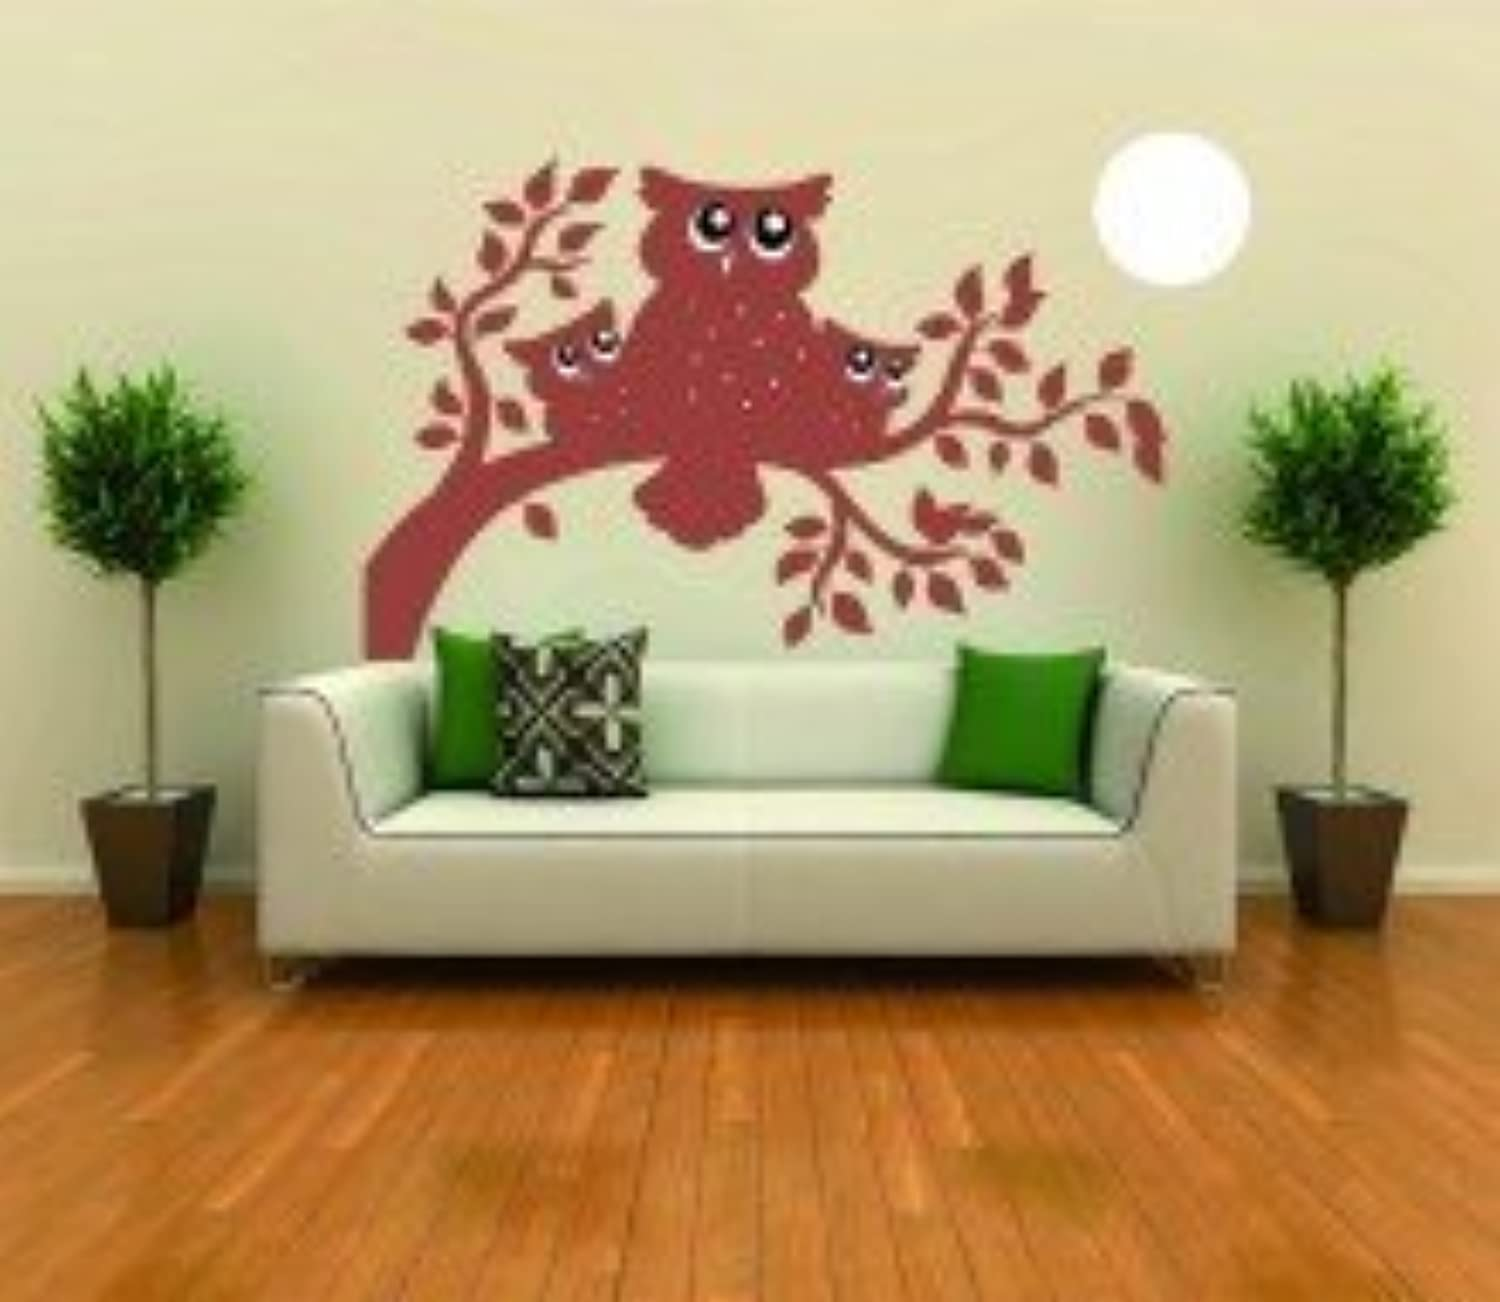 Owls On A Tree Branch Picture Art  Living Room  Home Decor Sticker  Vinyl Wall Decal  Size   24 Inches X 48 Inches  22 colors Available